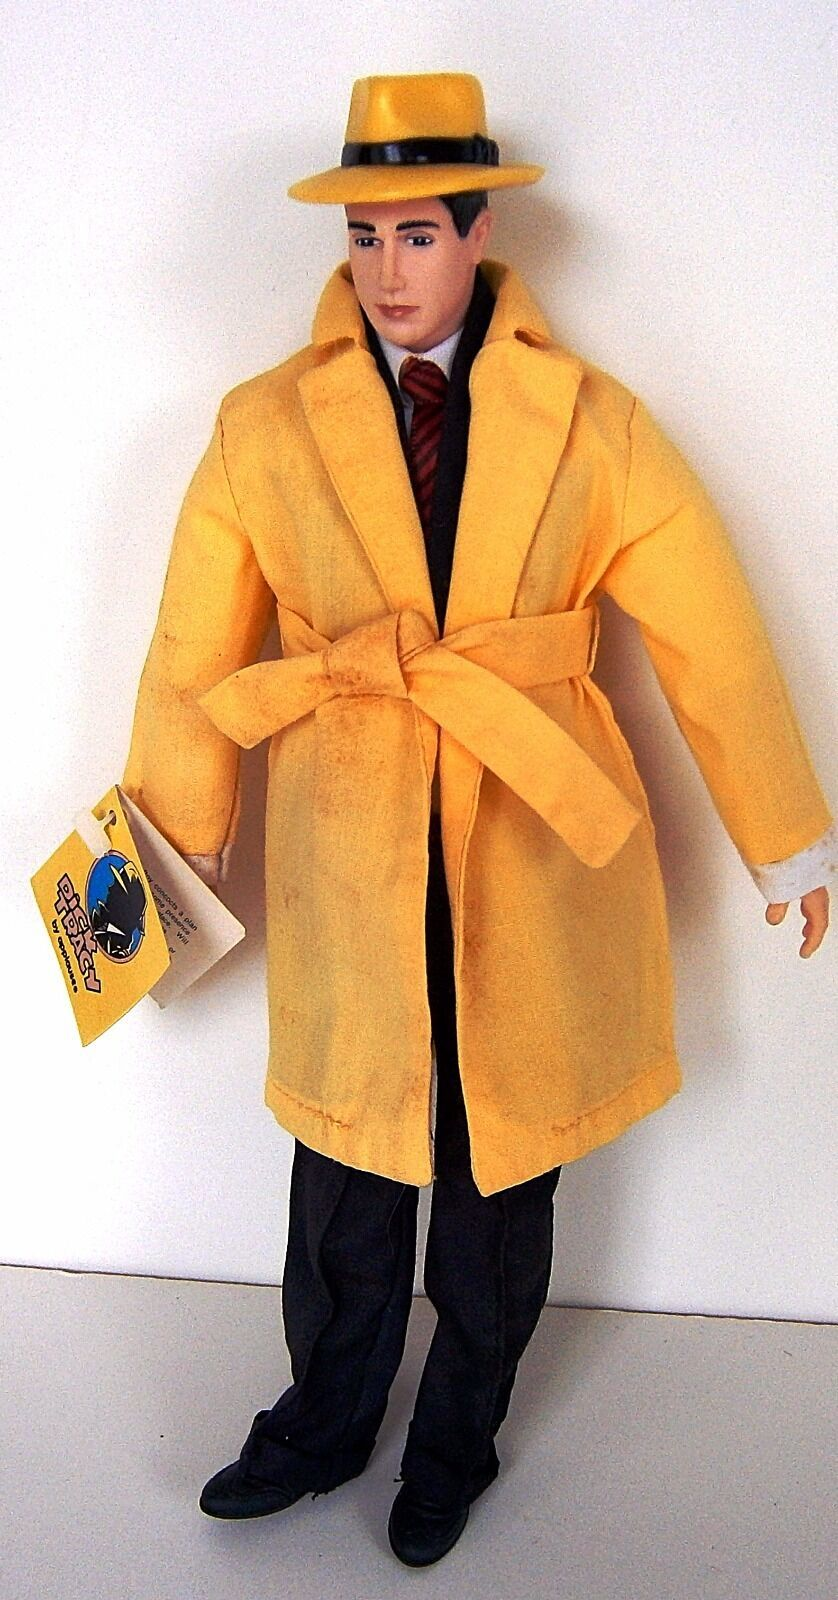 Dick Tracy Doll by Applause